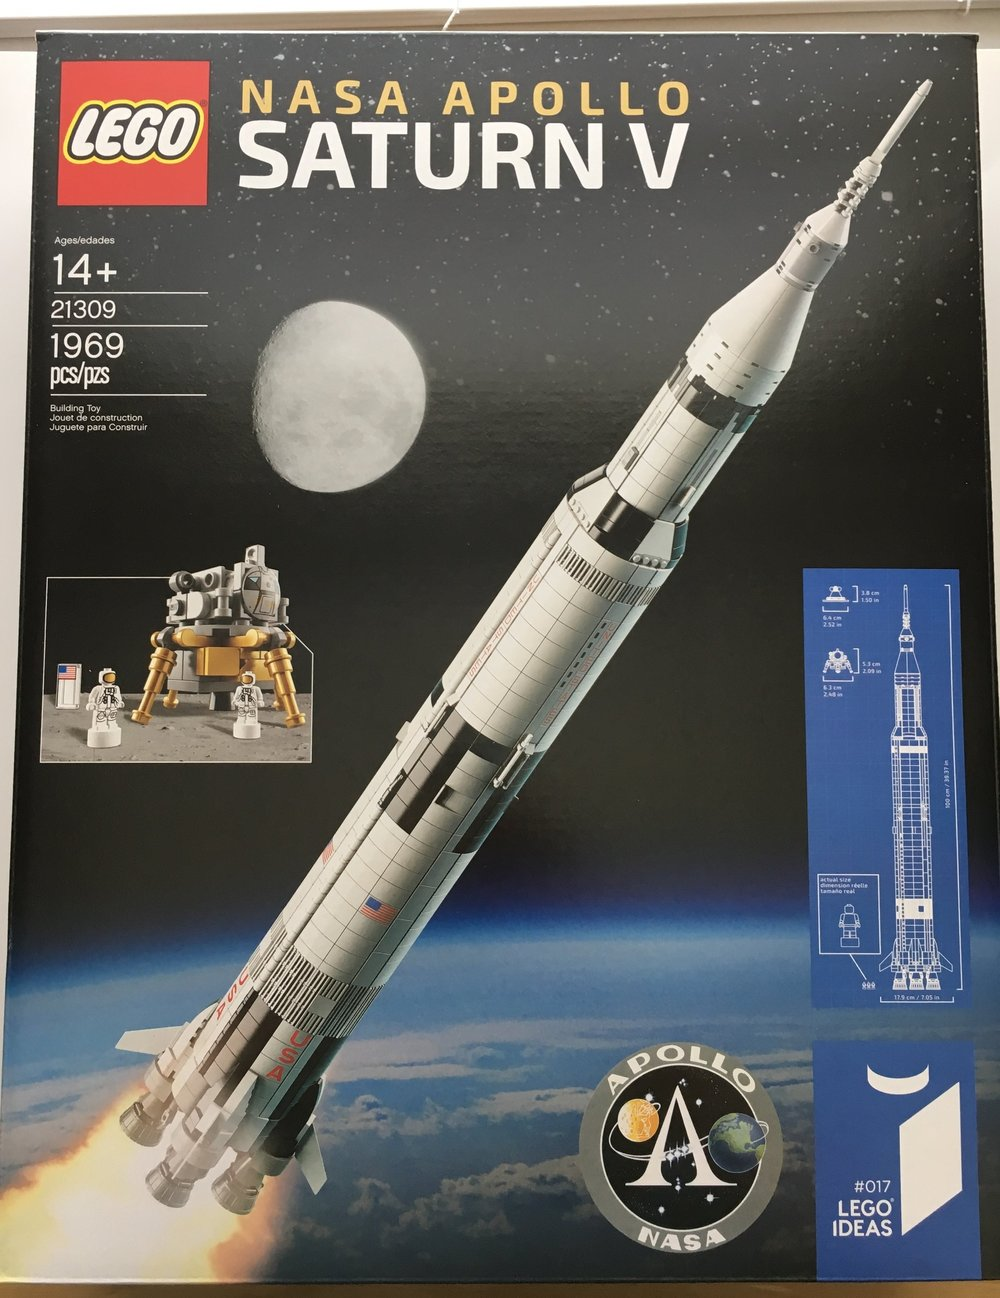 Set Review 21309 Nasa Apollo Saturn V Lego Ideas Bricks For